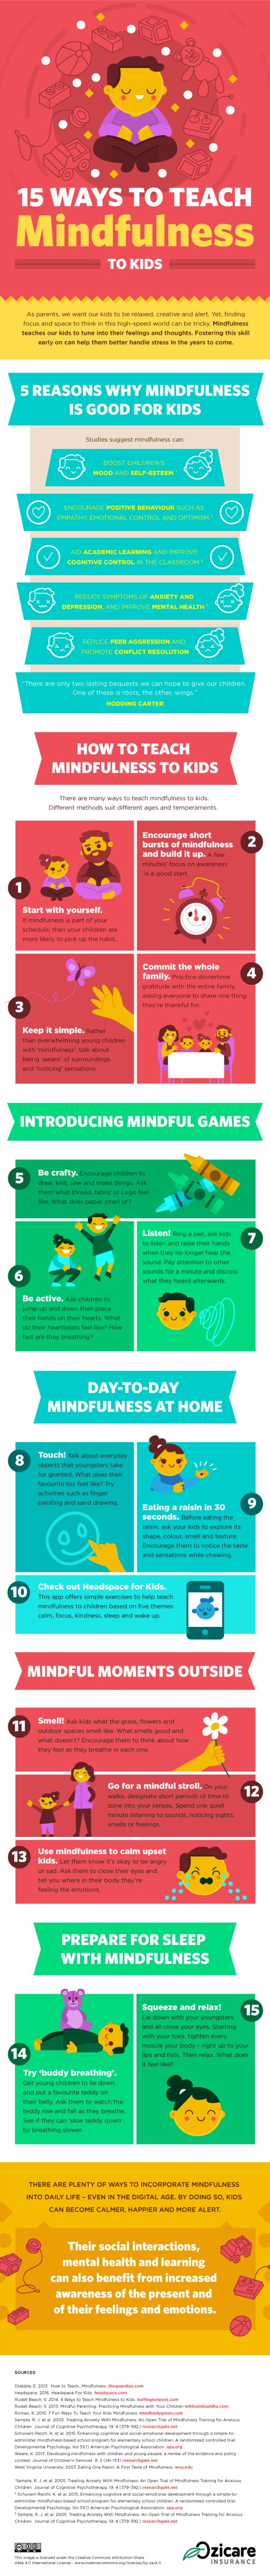 15 Ways to Teach Mindfulness to Kids